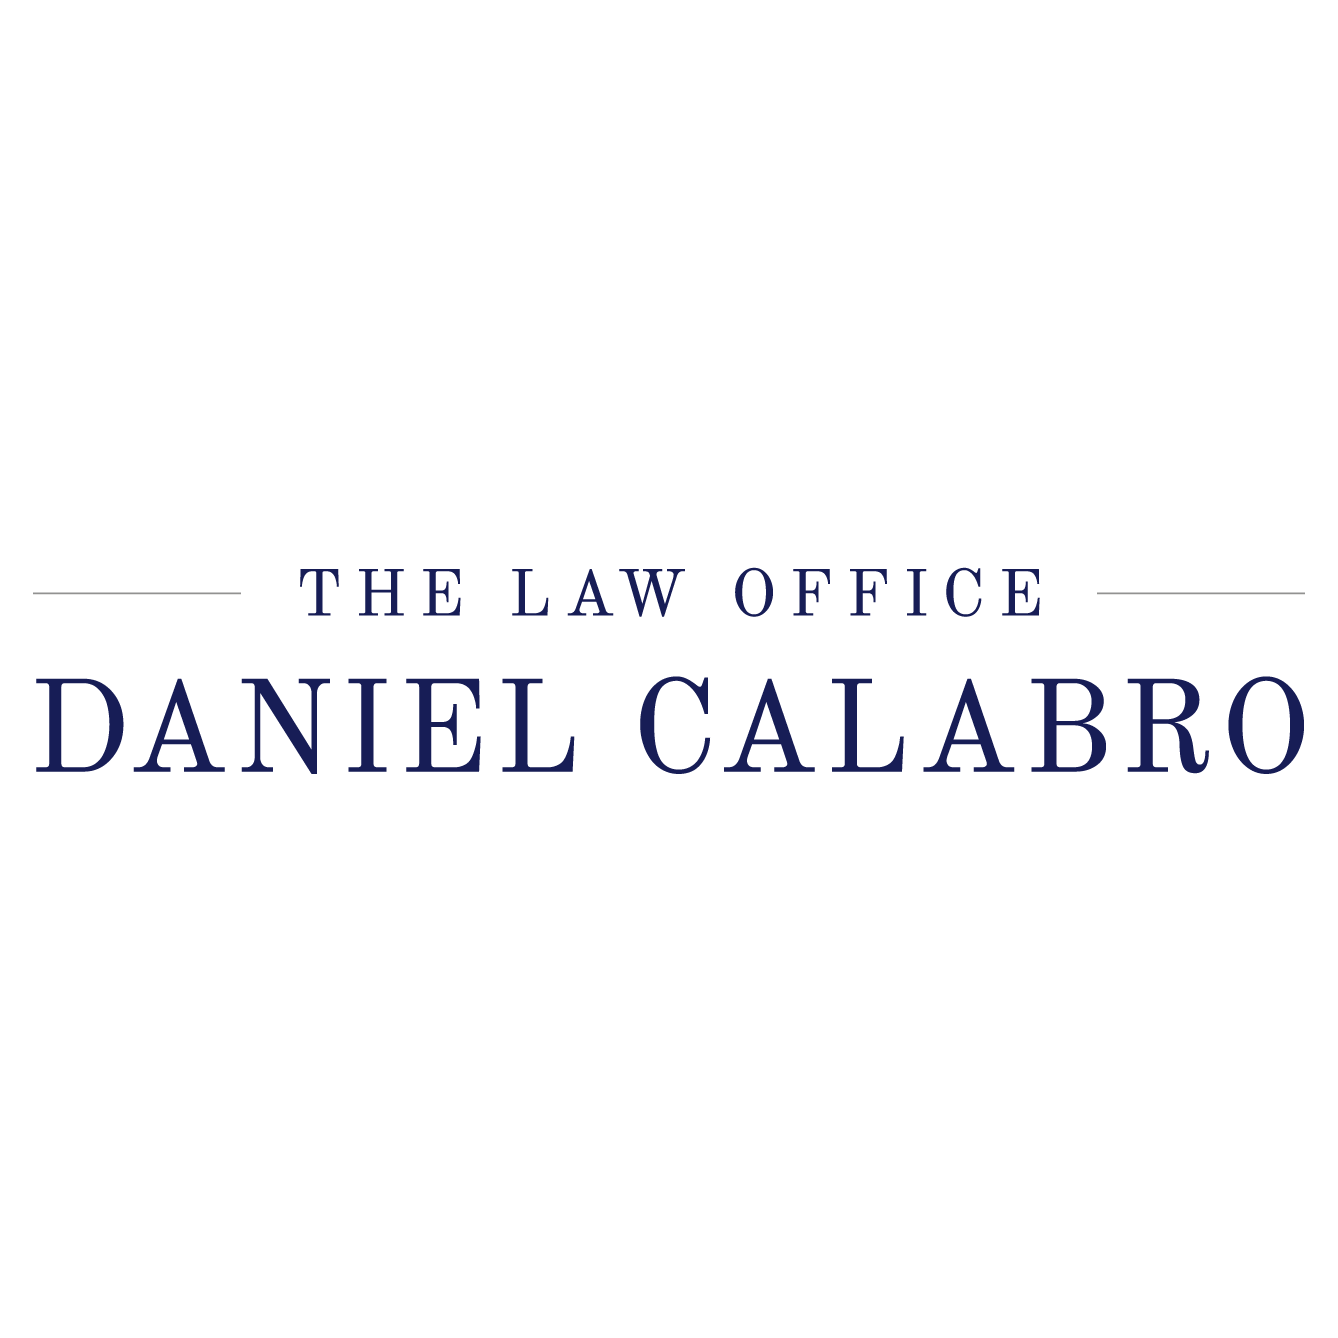 The Law Office Daniel Calabro